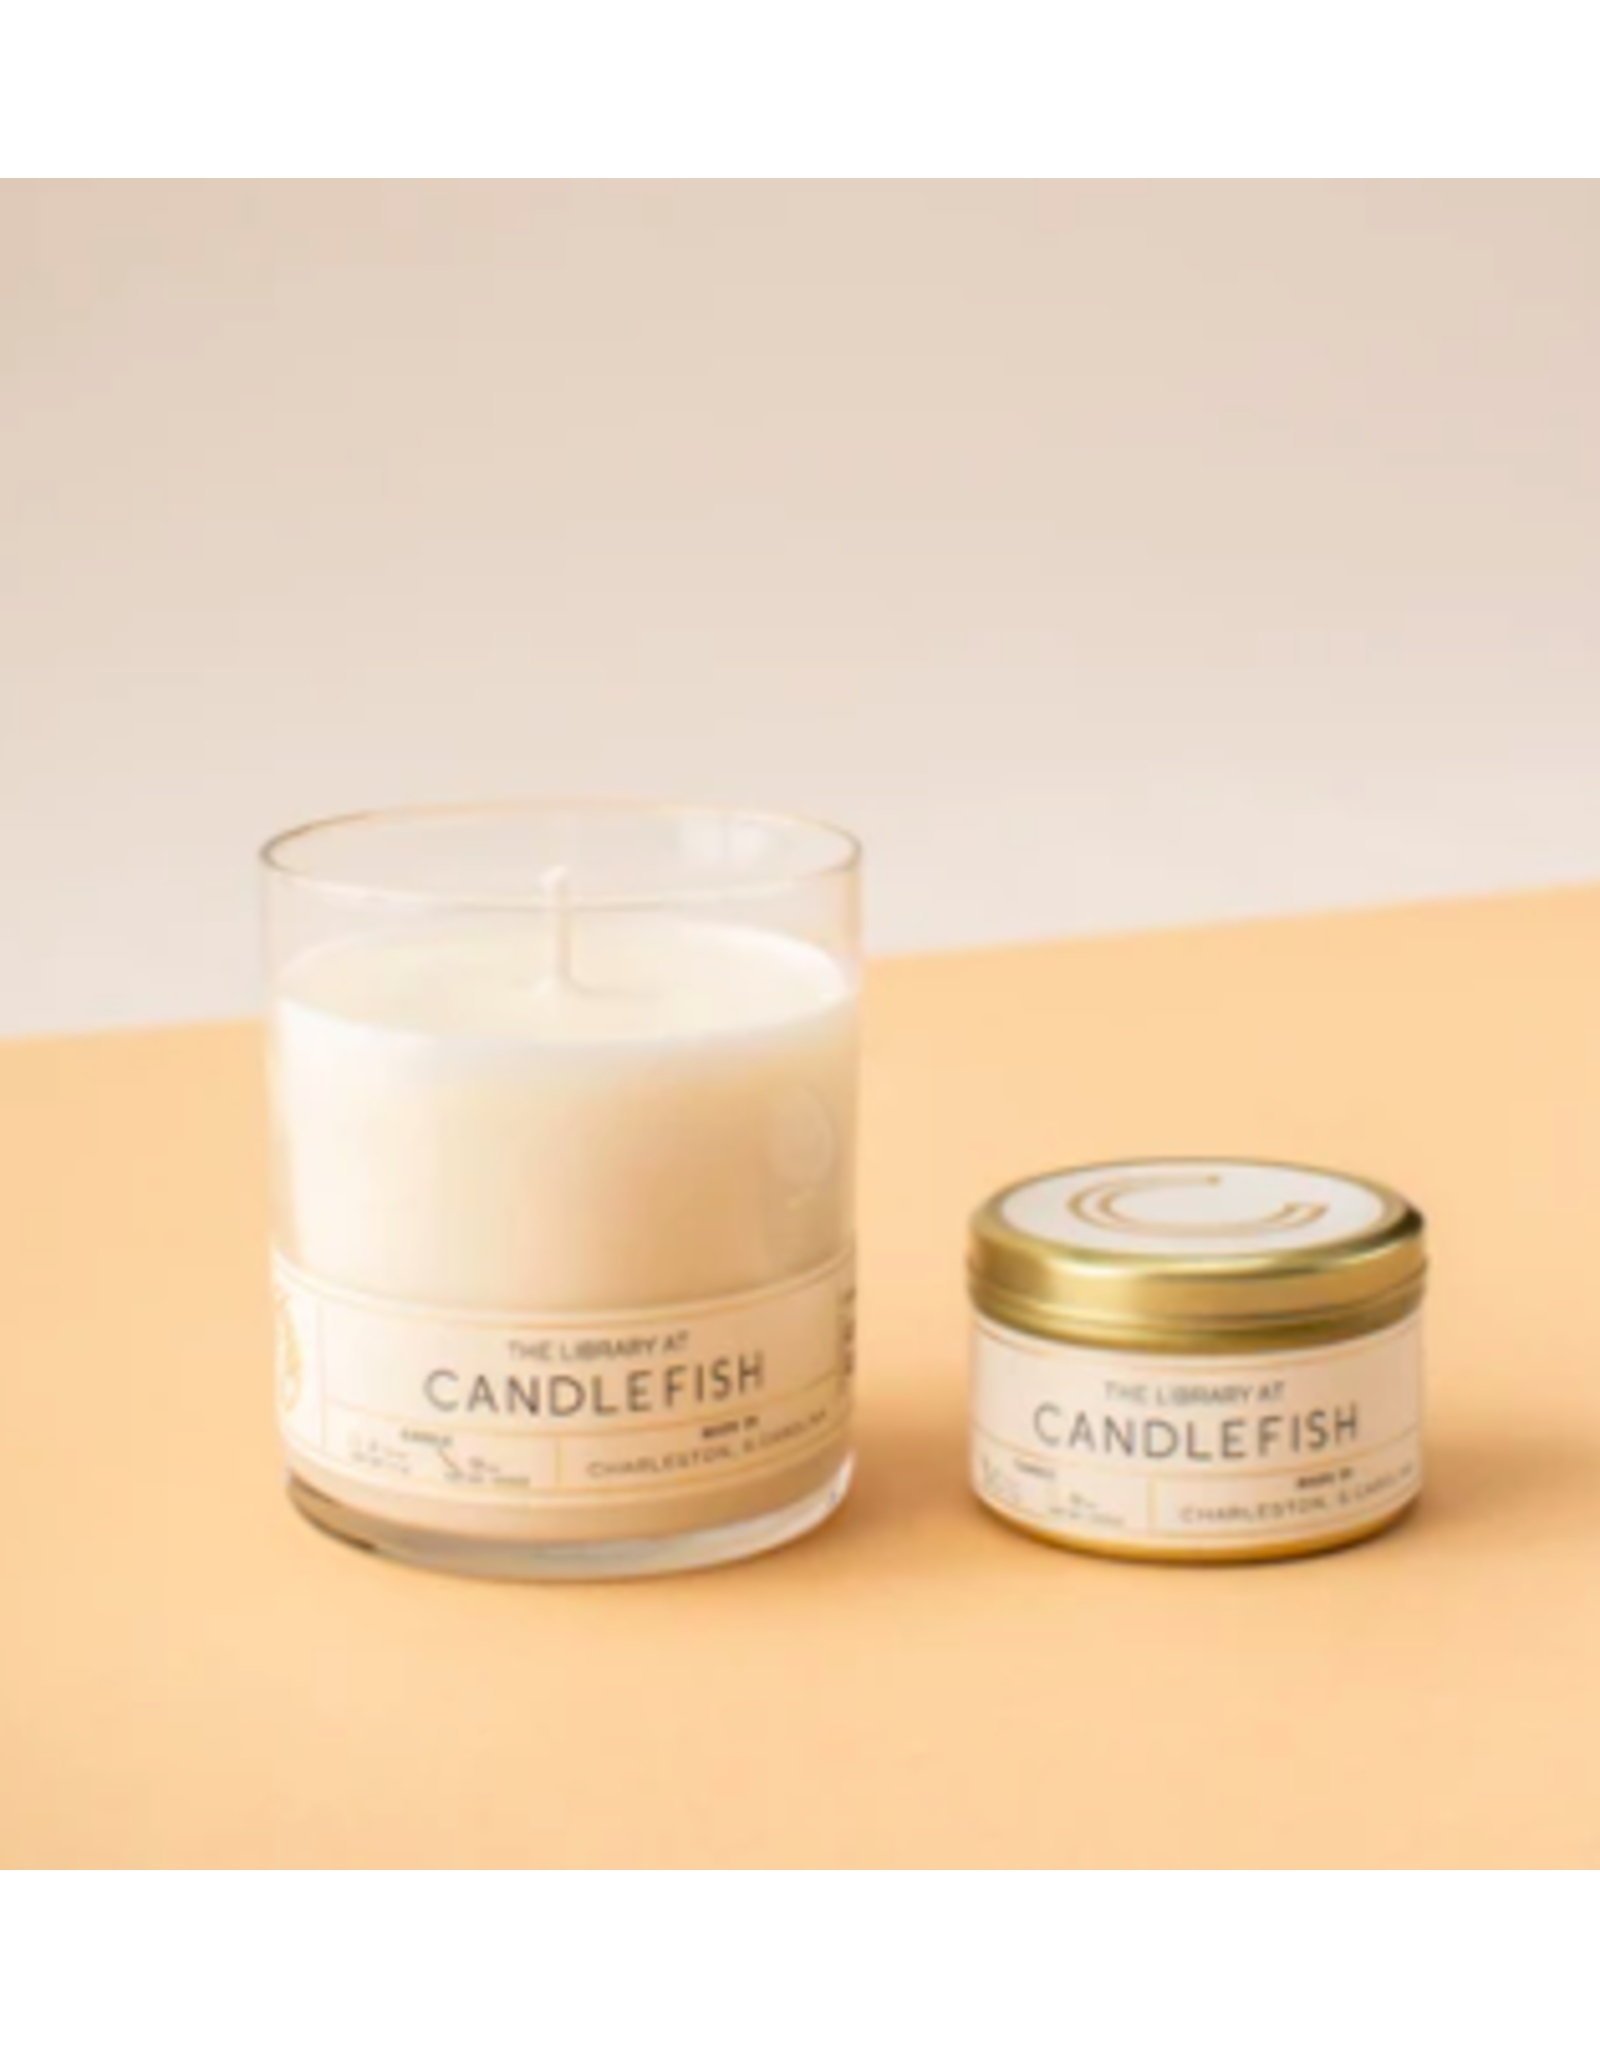 Candlefish No. 67 9oz Jar by Candlefish